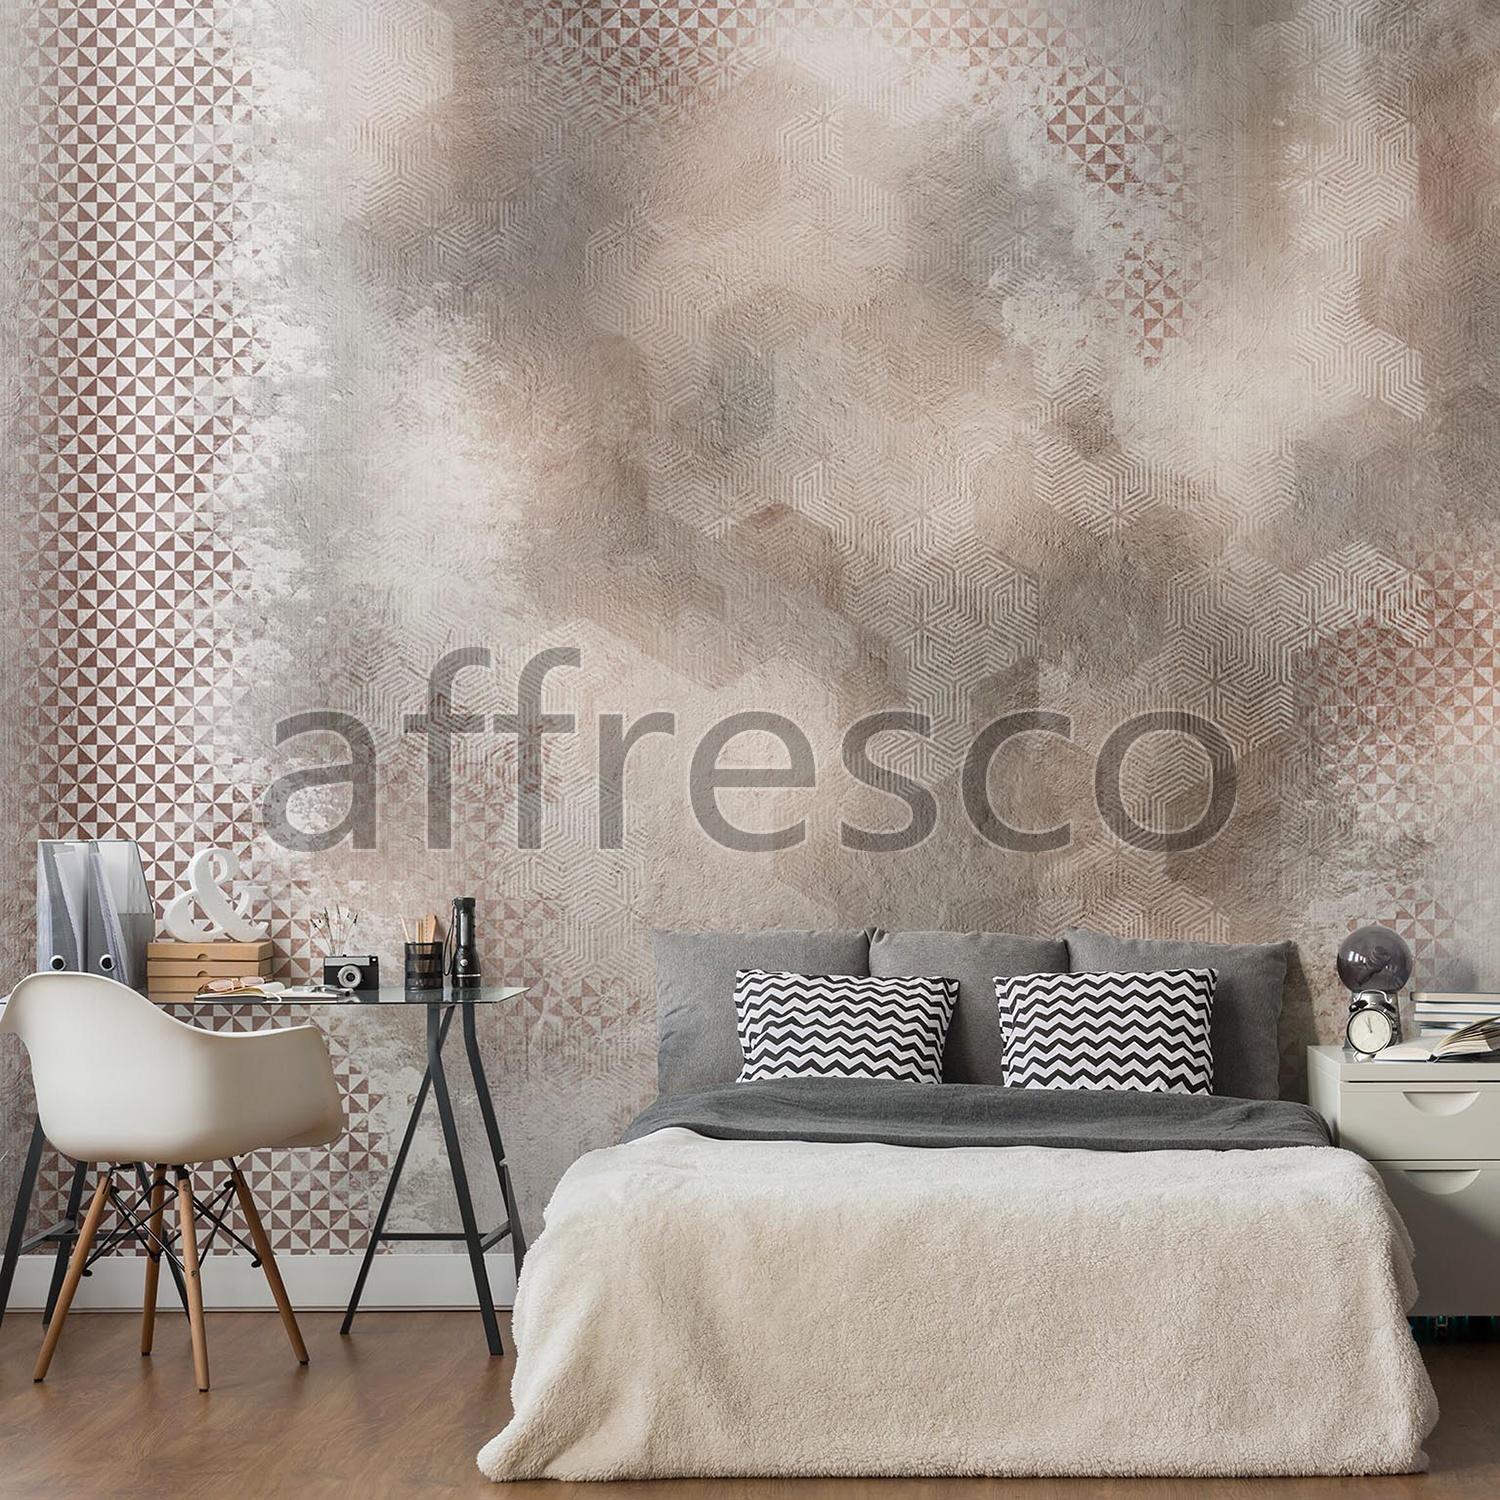 Handmade wallpaper, Handmade wallpaper | Twisty Line